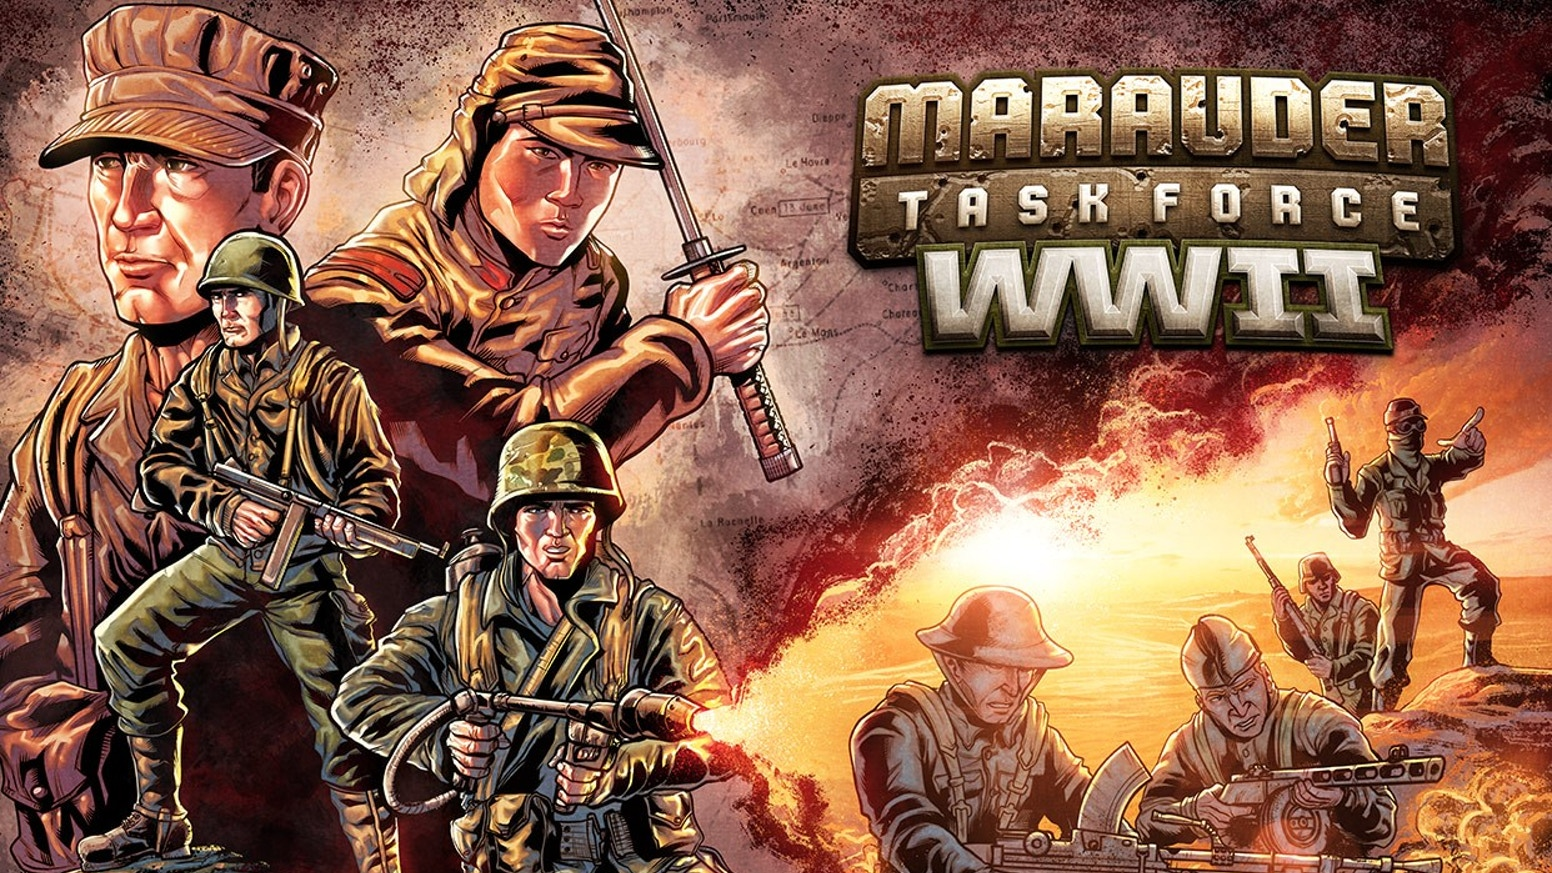 Marauder Task Force WWII 1:18 Scale 4 Inch Action Figures is the top crowdfunding project launched today. Marauder Task Force WWII 1:18 Scale 4 Inch Action Figures raised over $263227 from 783 backers. Other top projects include Death is Only the Beginning - New Novel in the KULT Universe, Blinks - A Board Game System With A Mind Of Its Own, Pandorum — The Board Game...